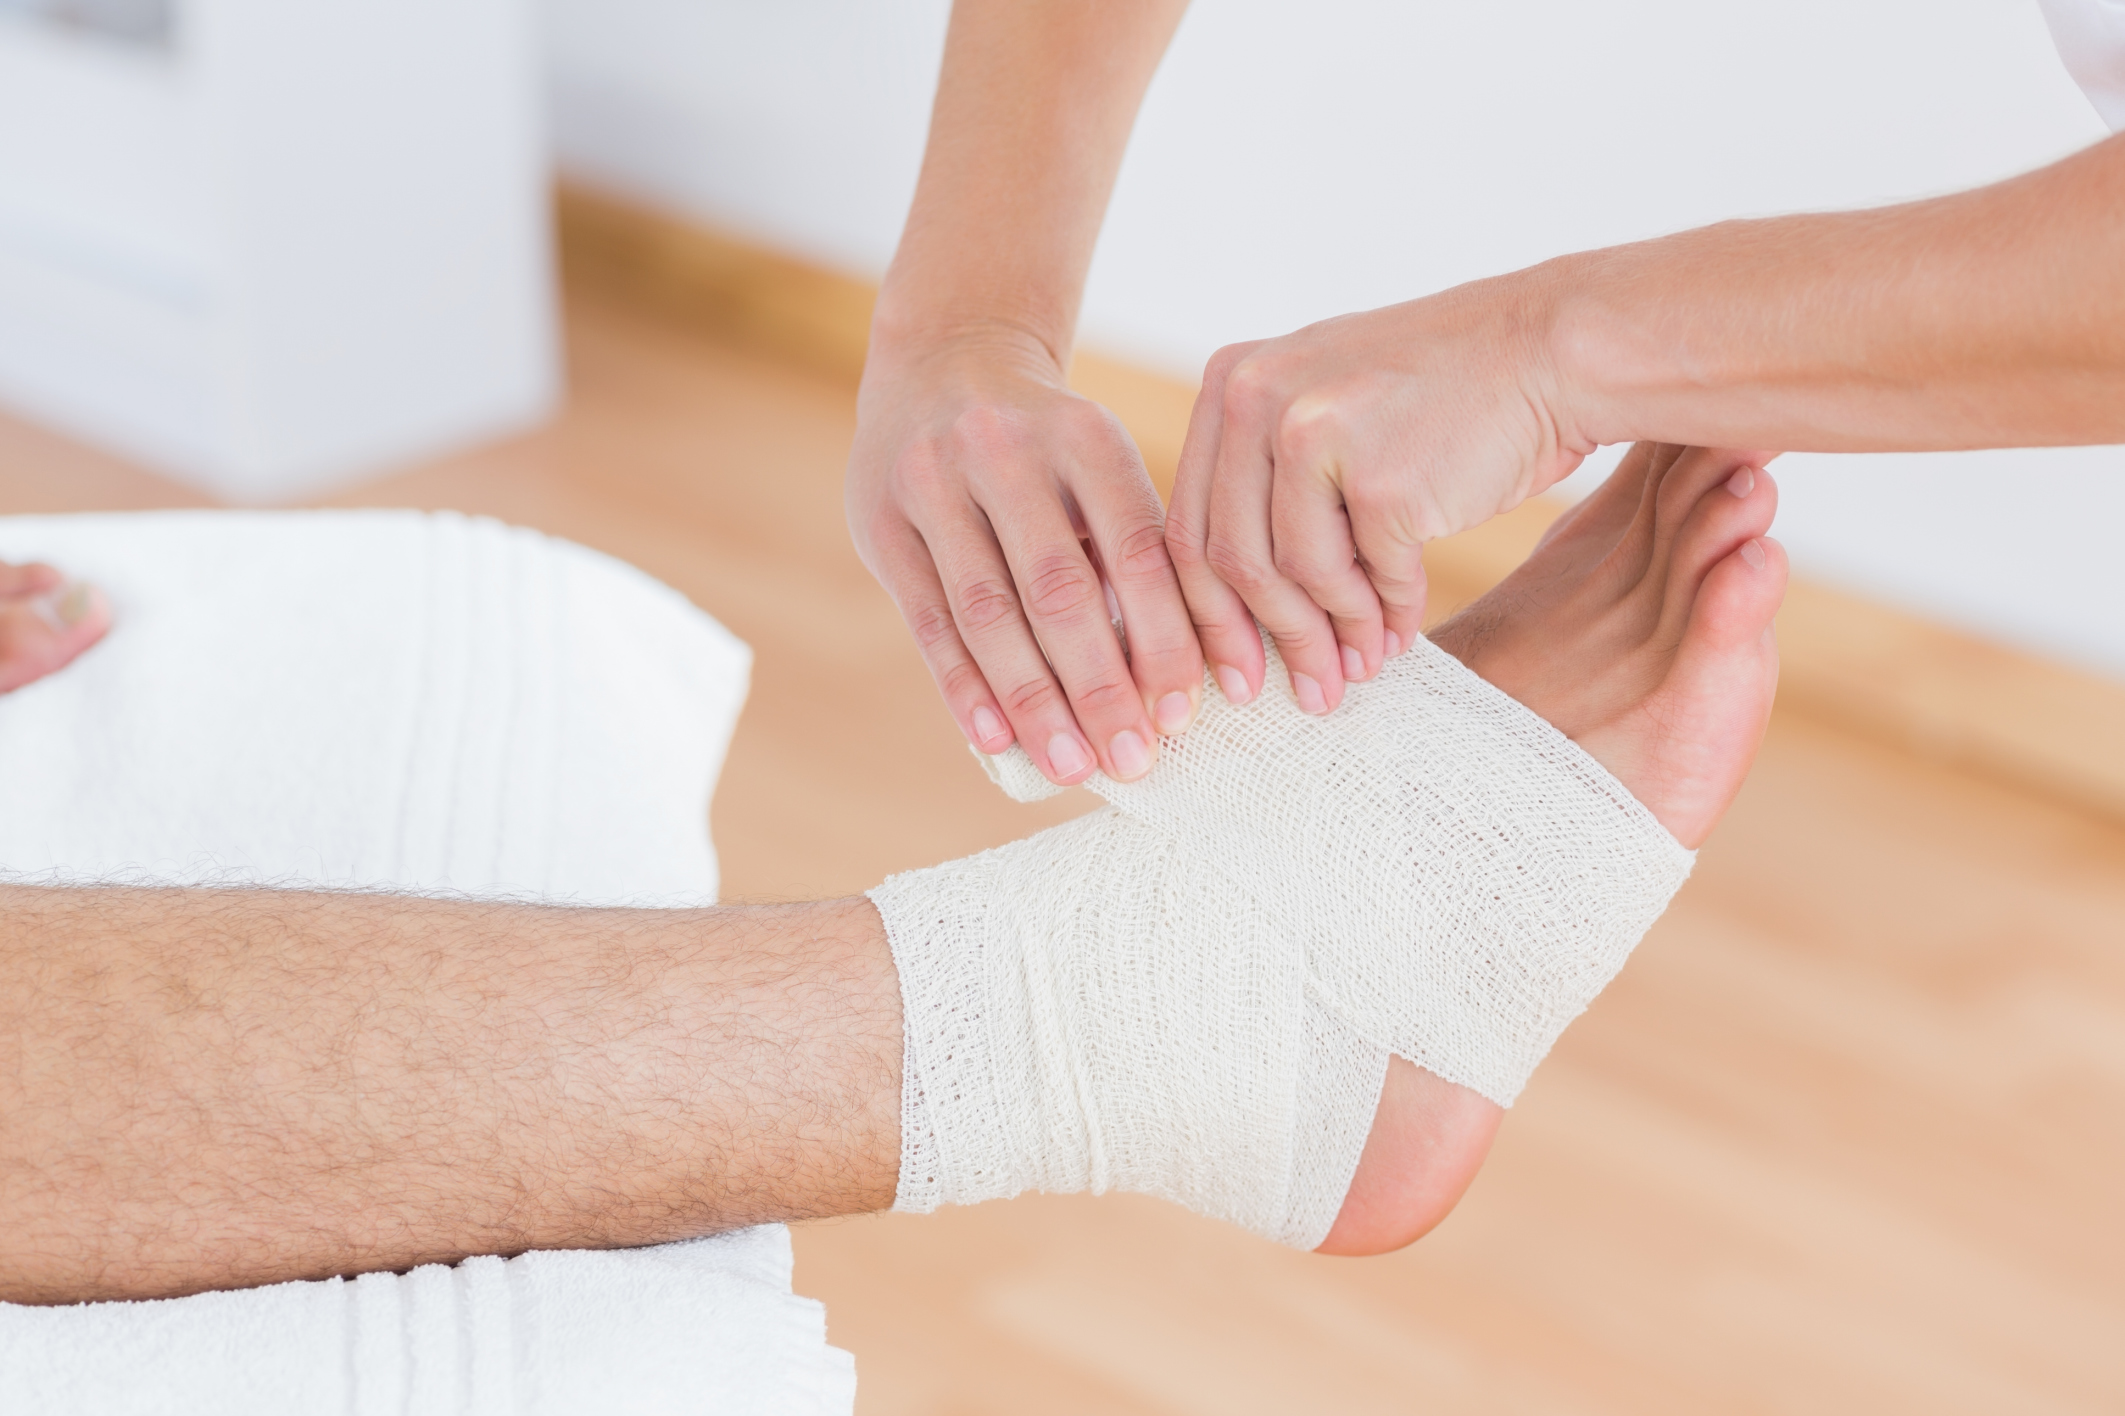 First aid for sprains and muscles